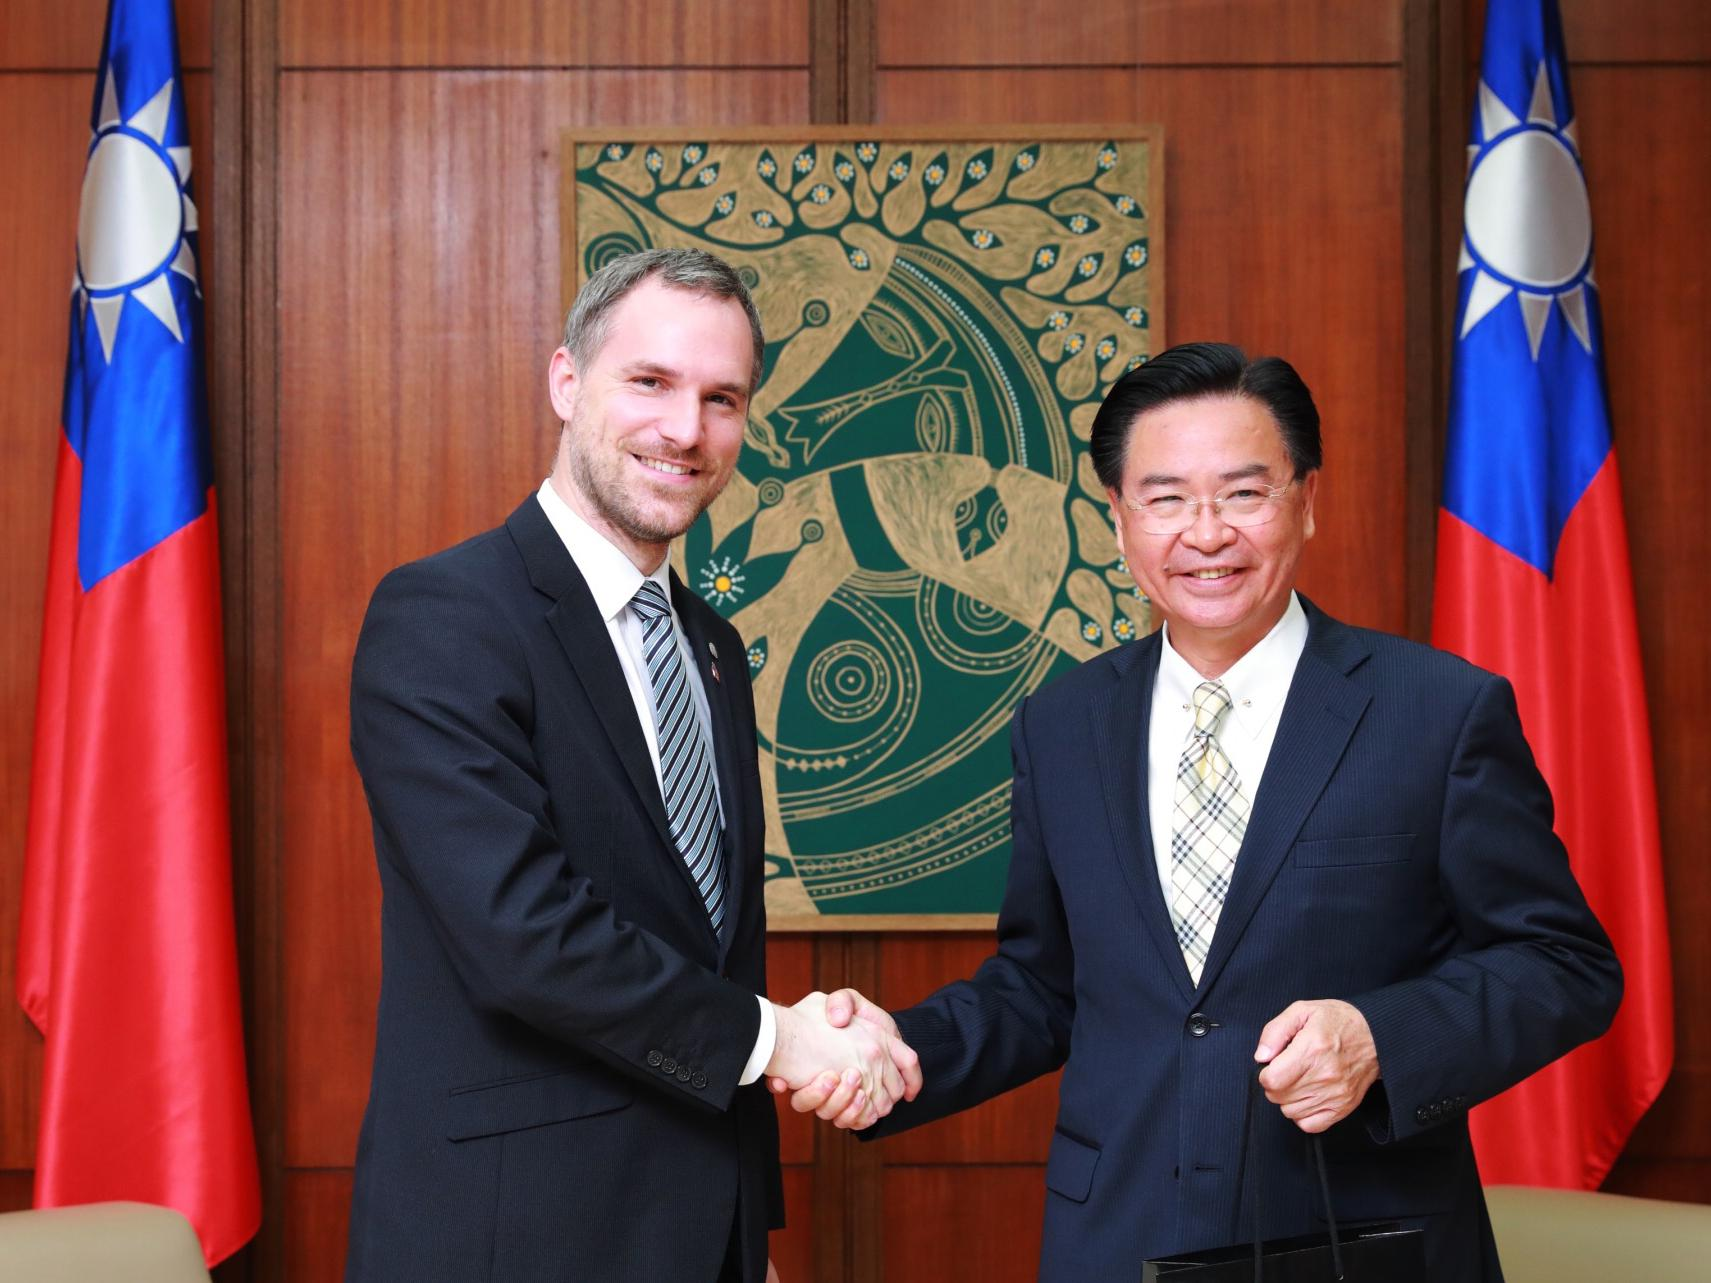 Prague Mayor Zdeněk Hřib and Minister of Foreign Affairs of Taiwan Joseph Wu in April 2019. (Image: flickr / CC0 1.0)